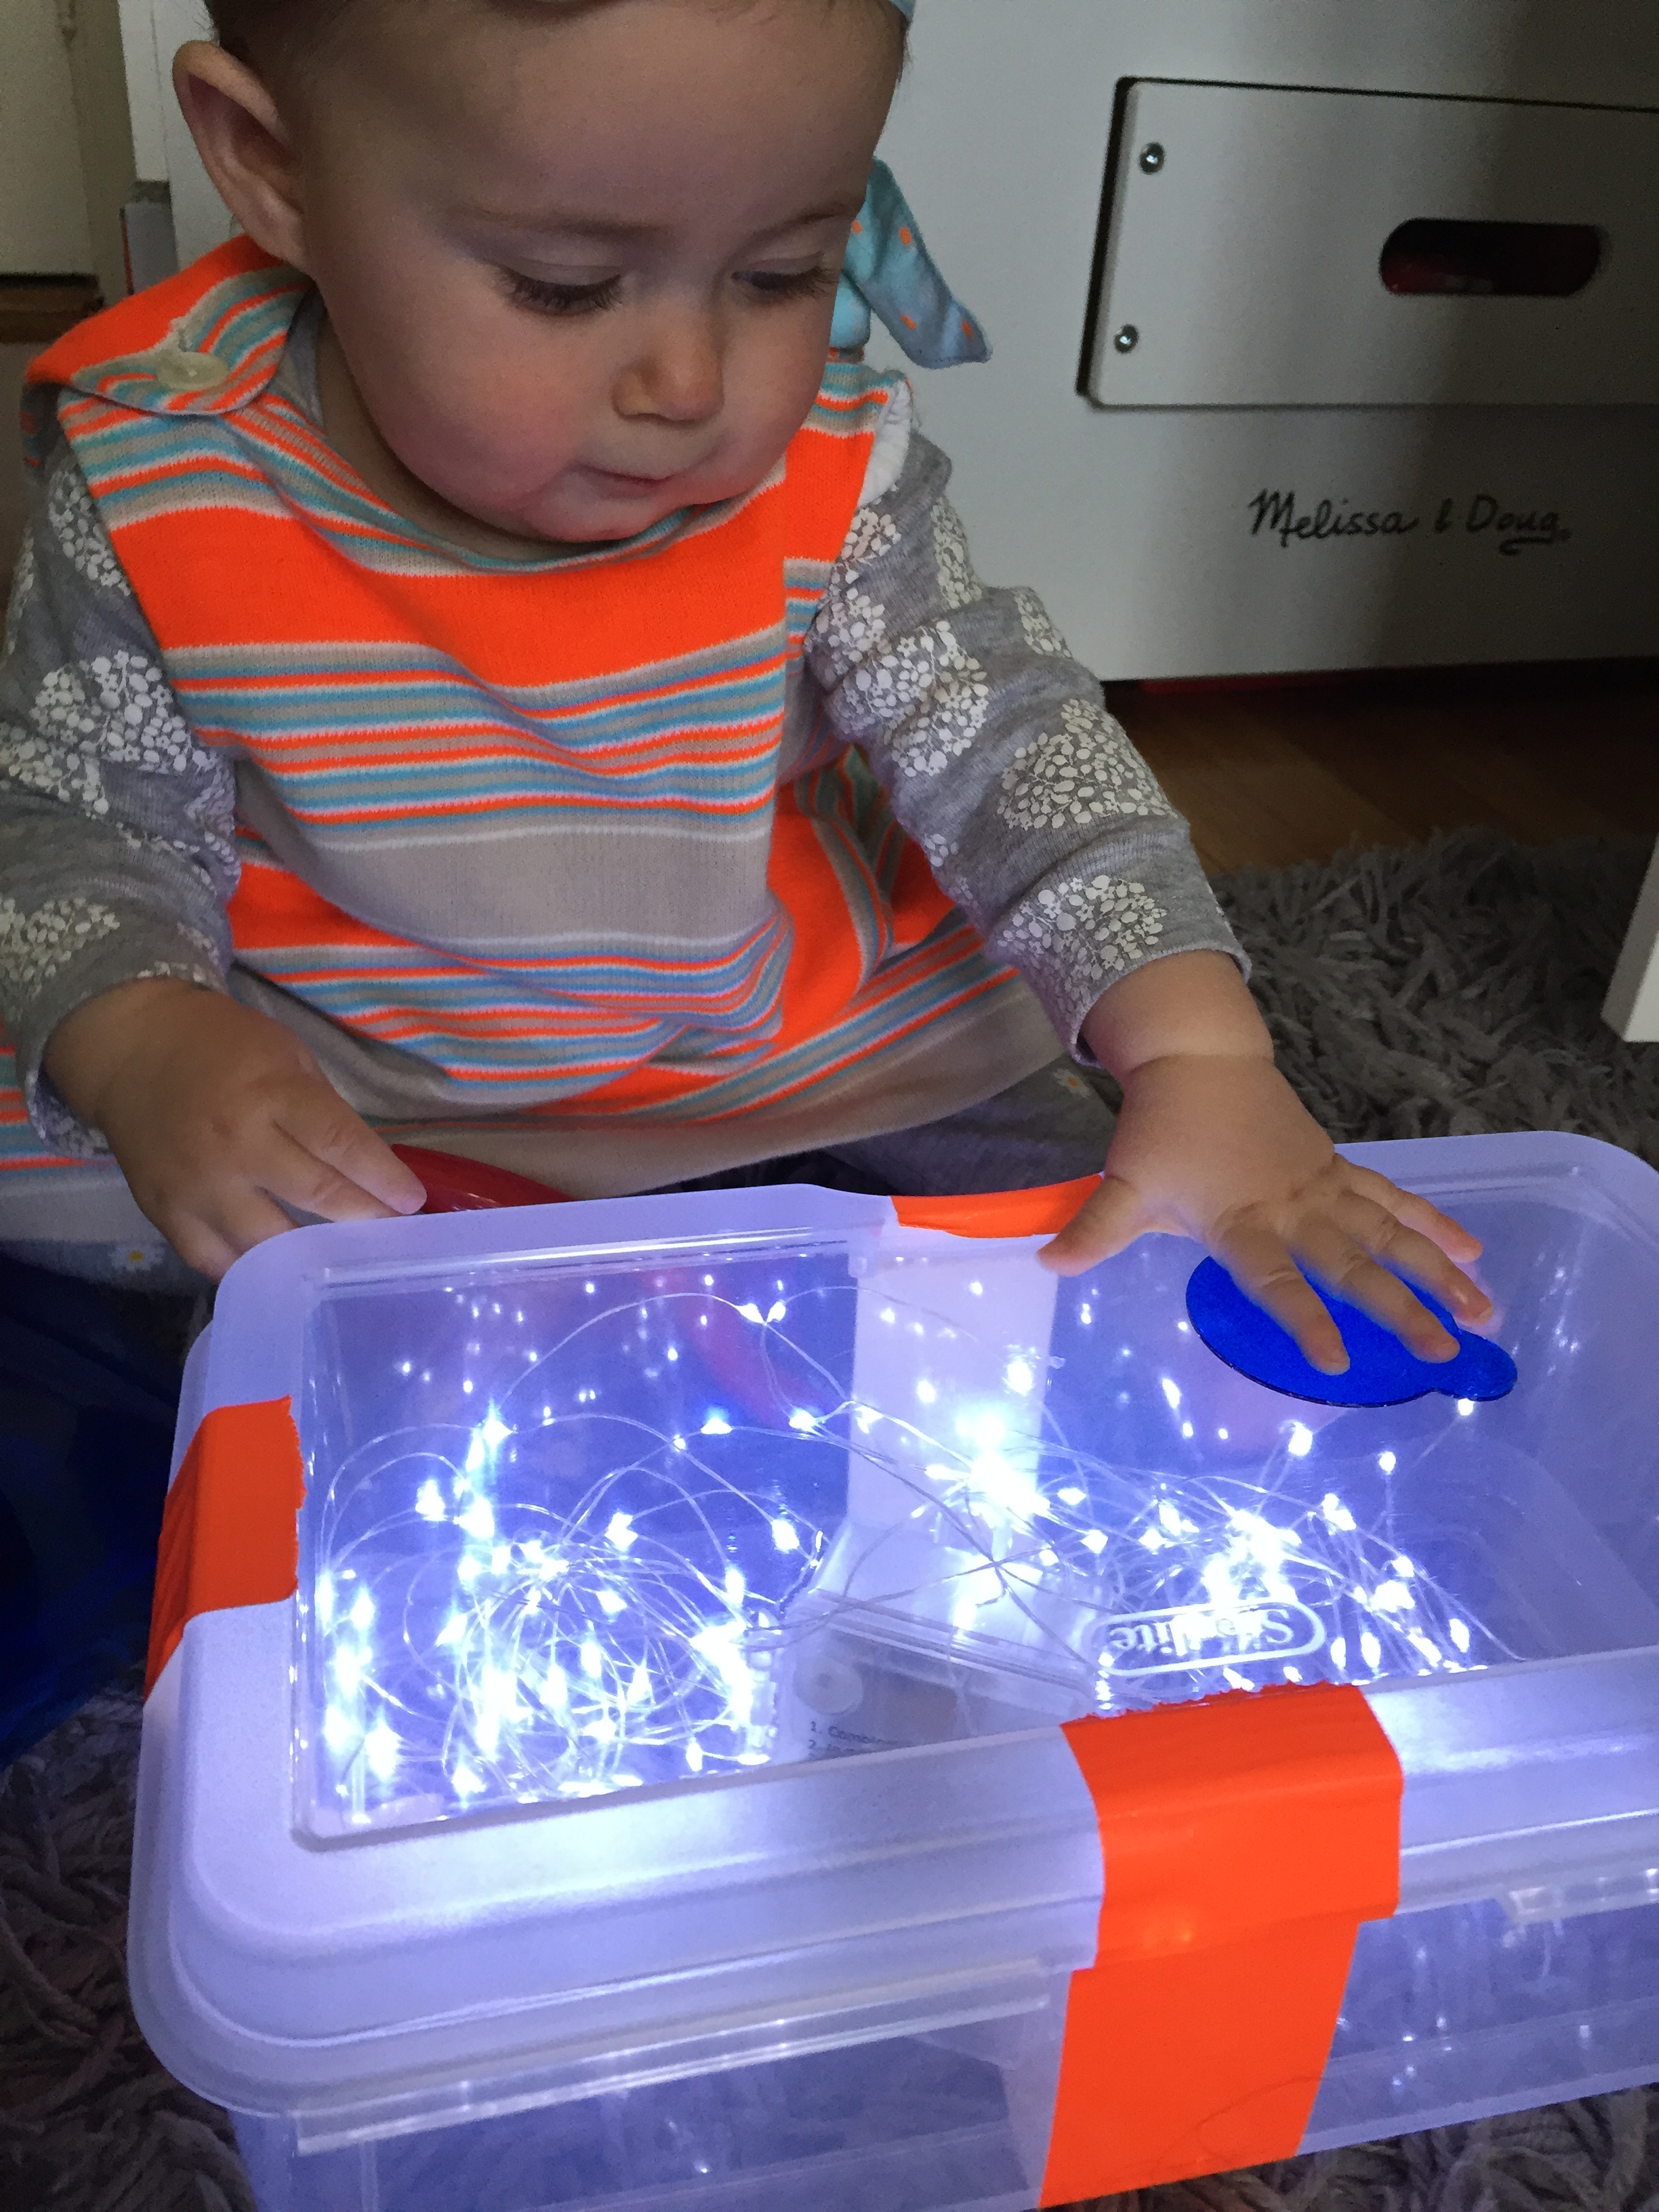 DIY LIGHT TABLE  Materials: clear box,  battery LED lights , duct tape, clear colored cellophane, magna tiles, translucent objects.  Process: Let children explore the light table. Encourage them to stack different translucent objects on the light table.  Words: light, dark, transparent, translucent, color words, shape words  Questions: What do you think will happen if? What do you see? What do you notice? I wonder…?